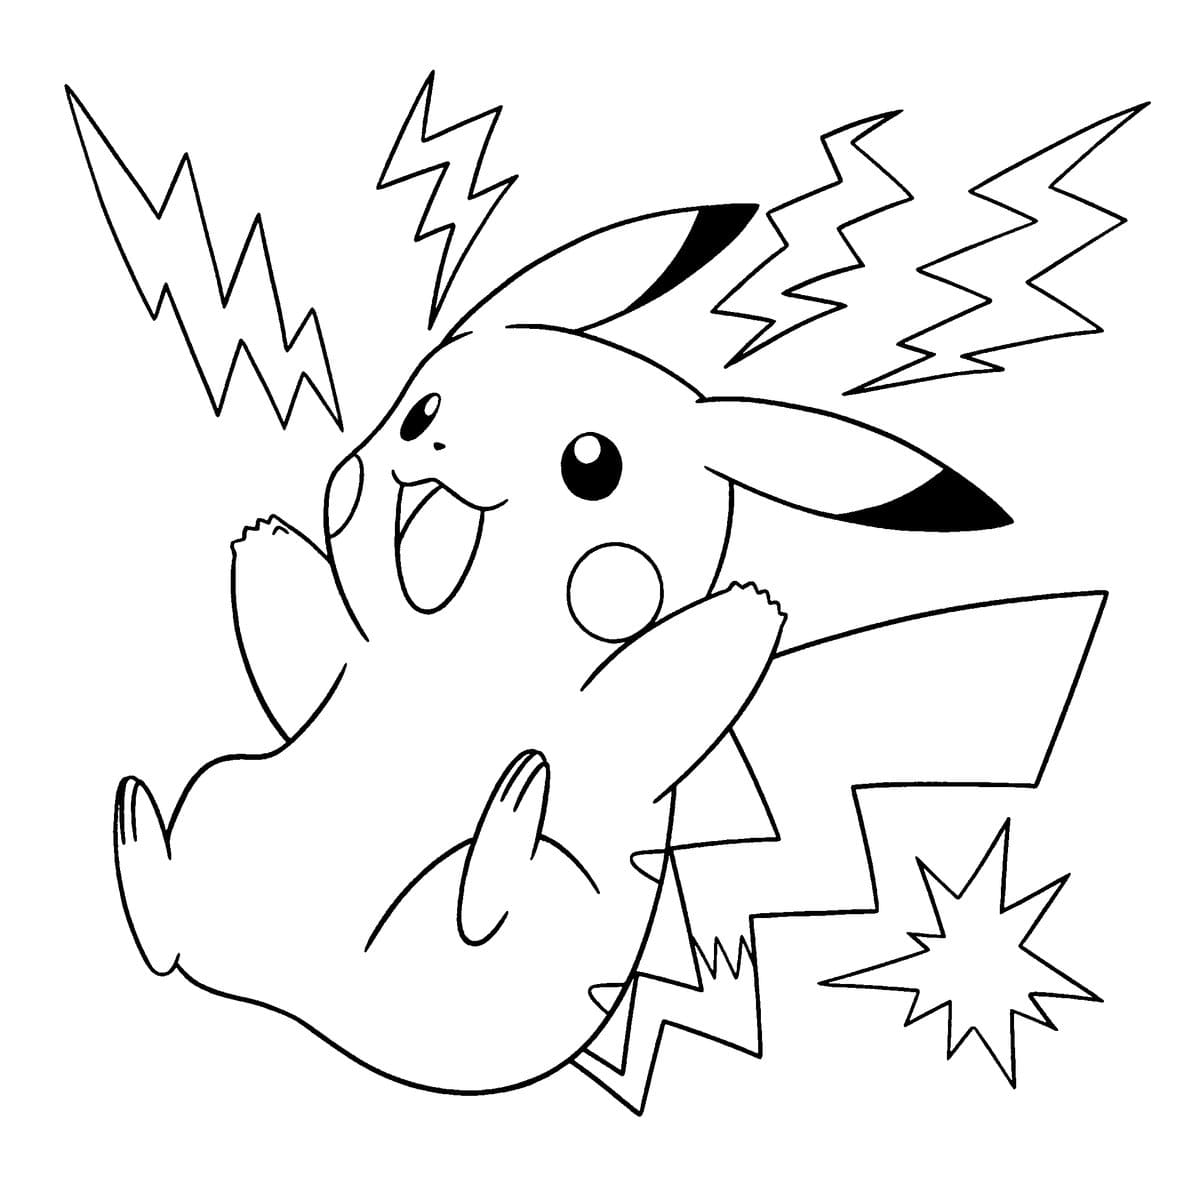 Coloring Pages Pikachu And Other Pokemon Print For Free 100 Images